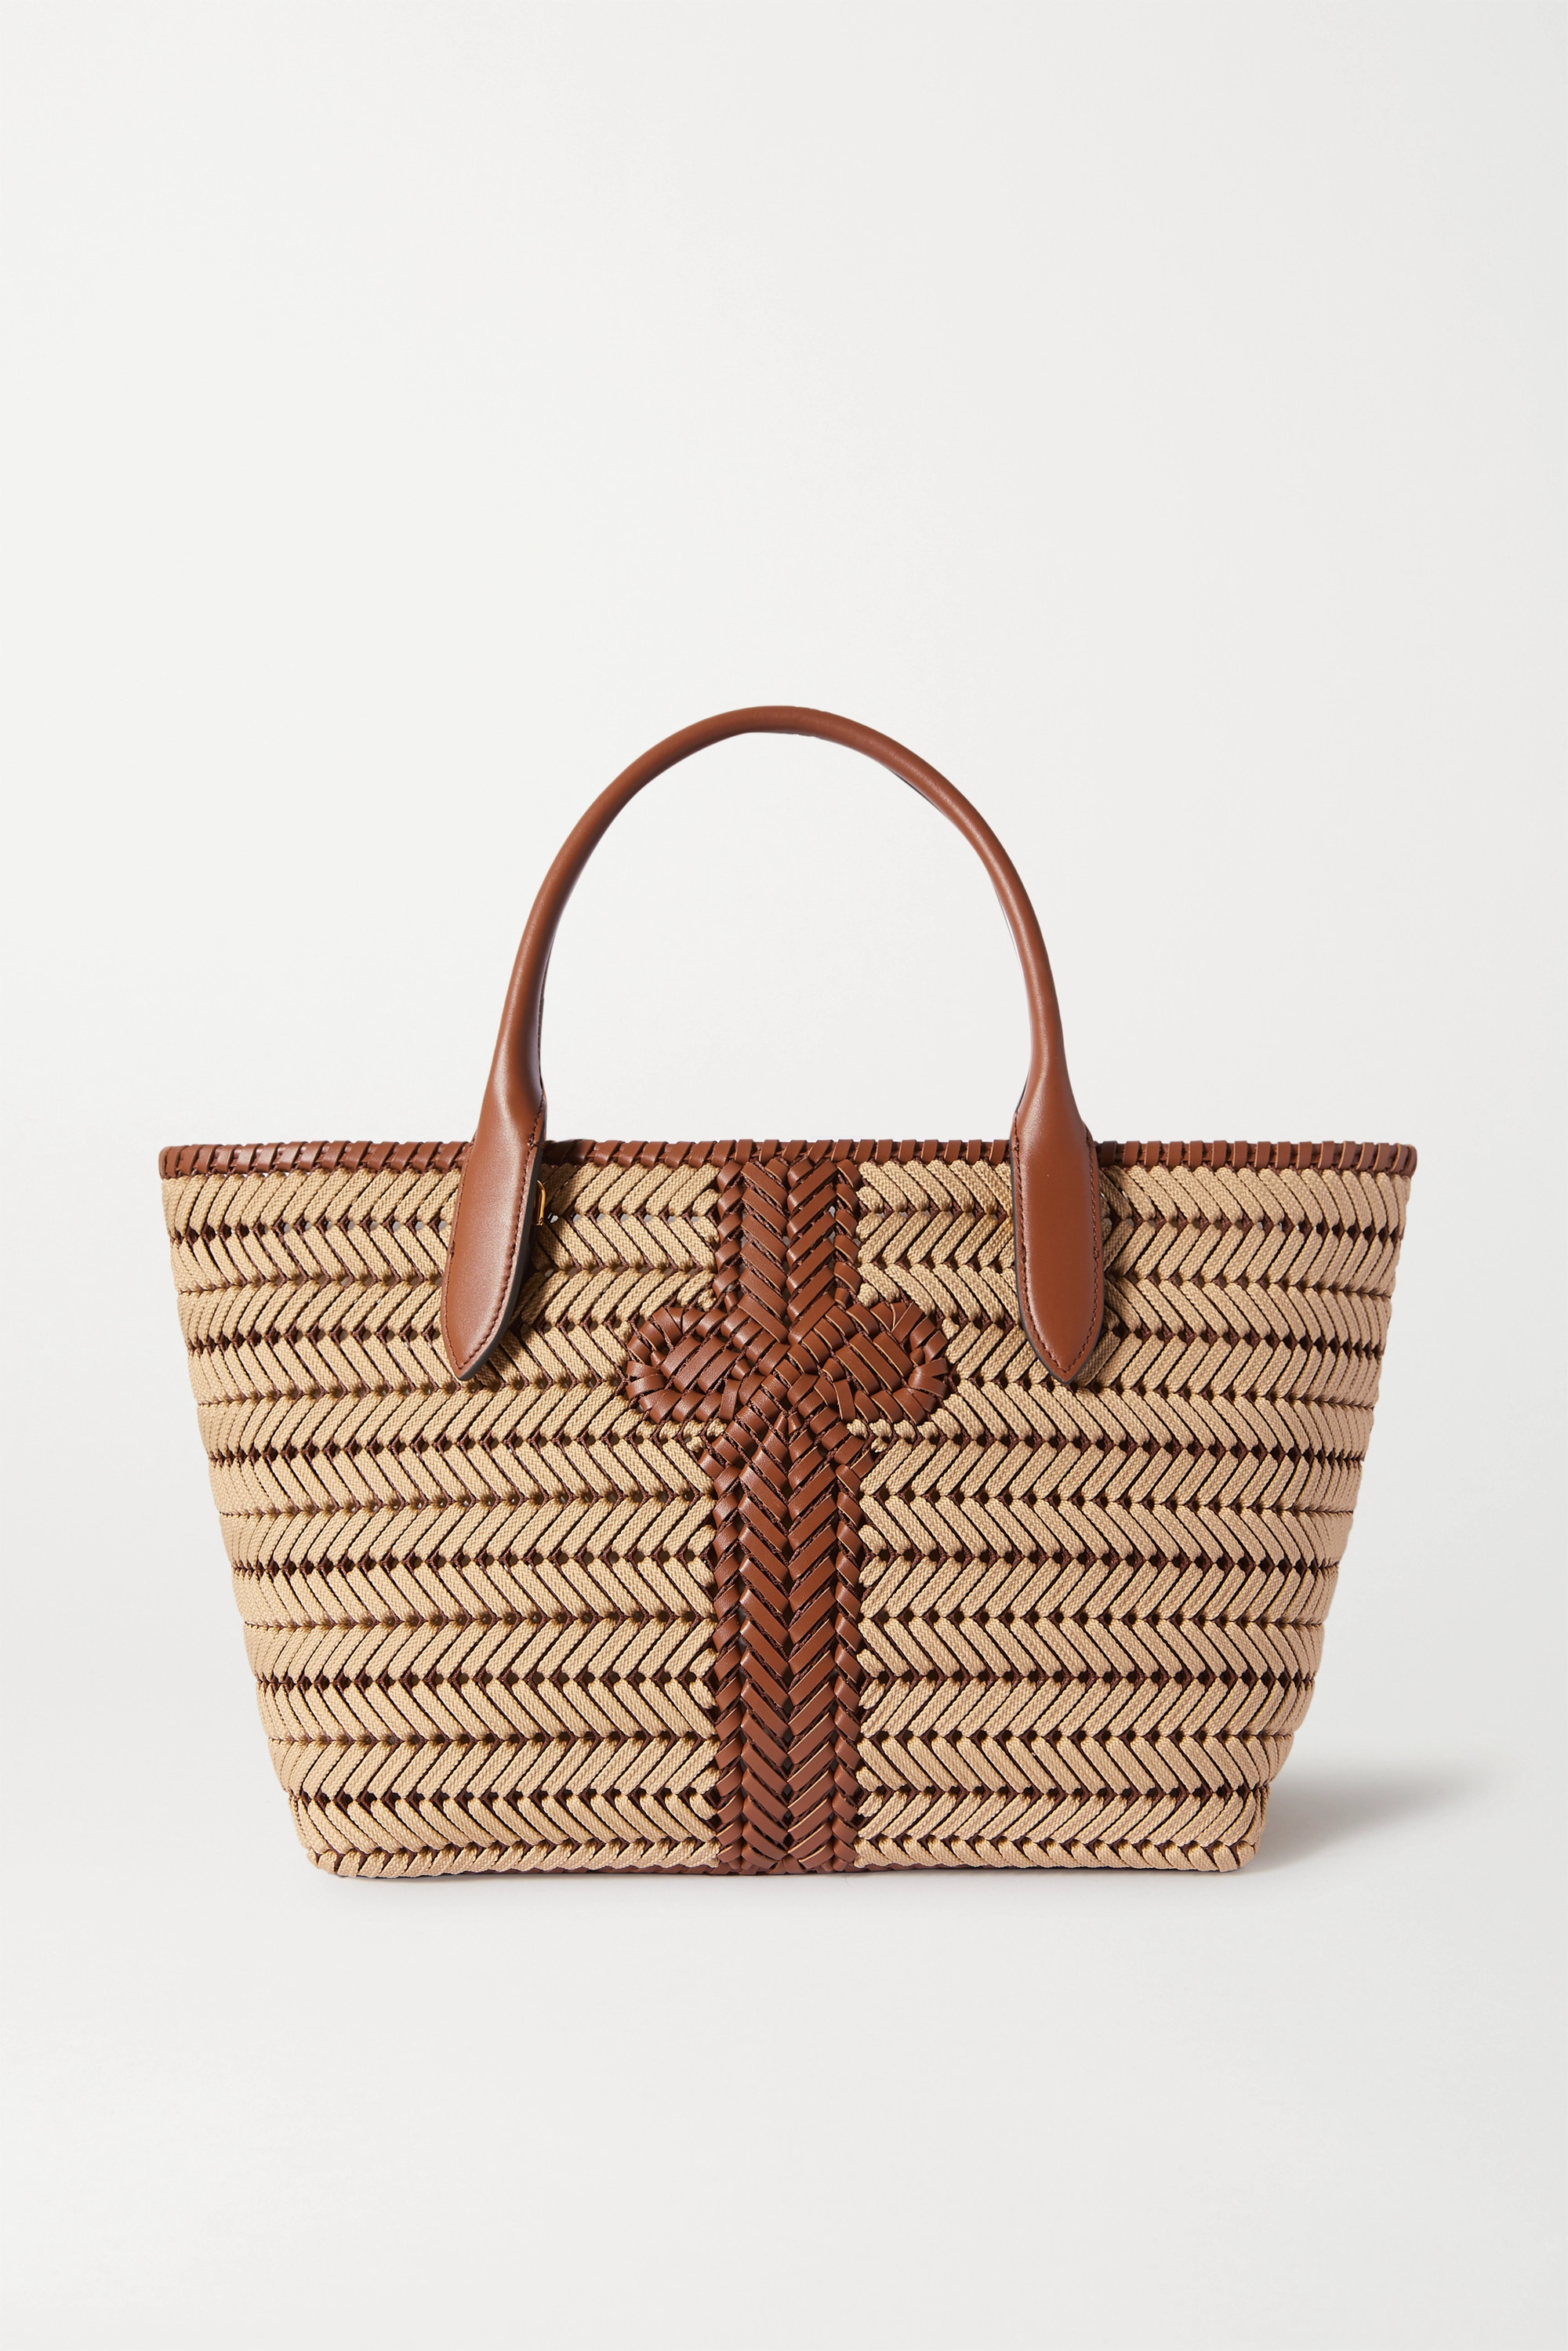 Anya Hindmarch Neeson woven leather-trimmed rope tote